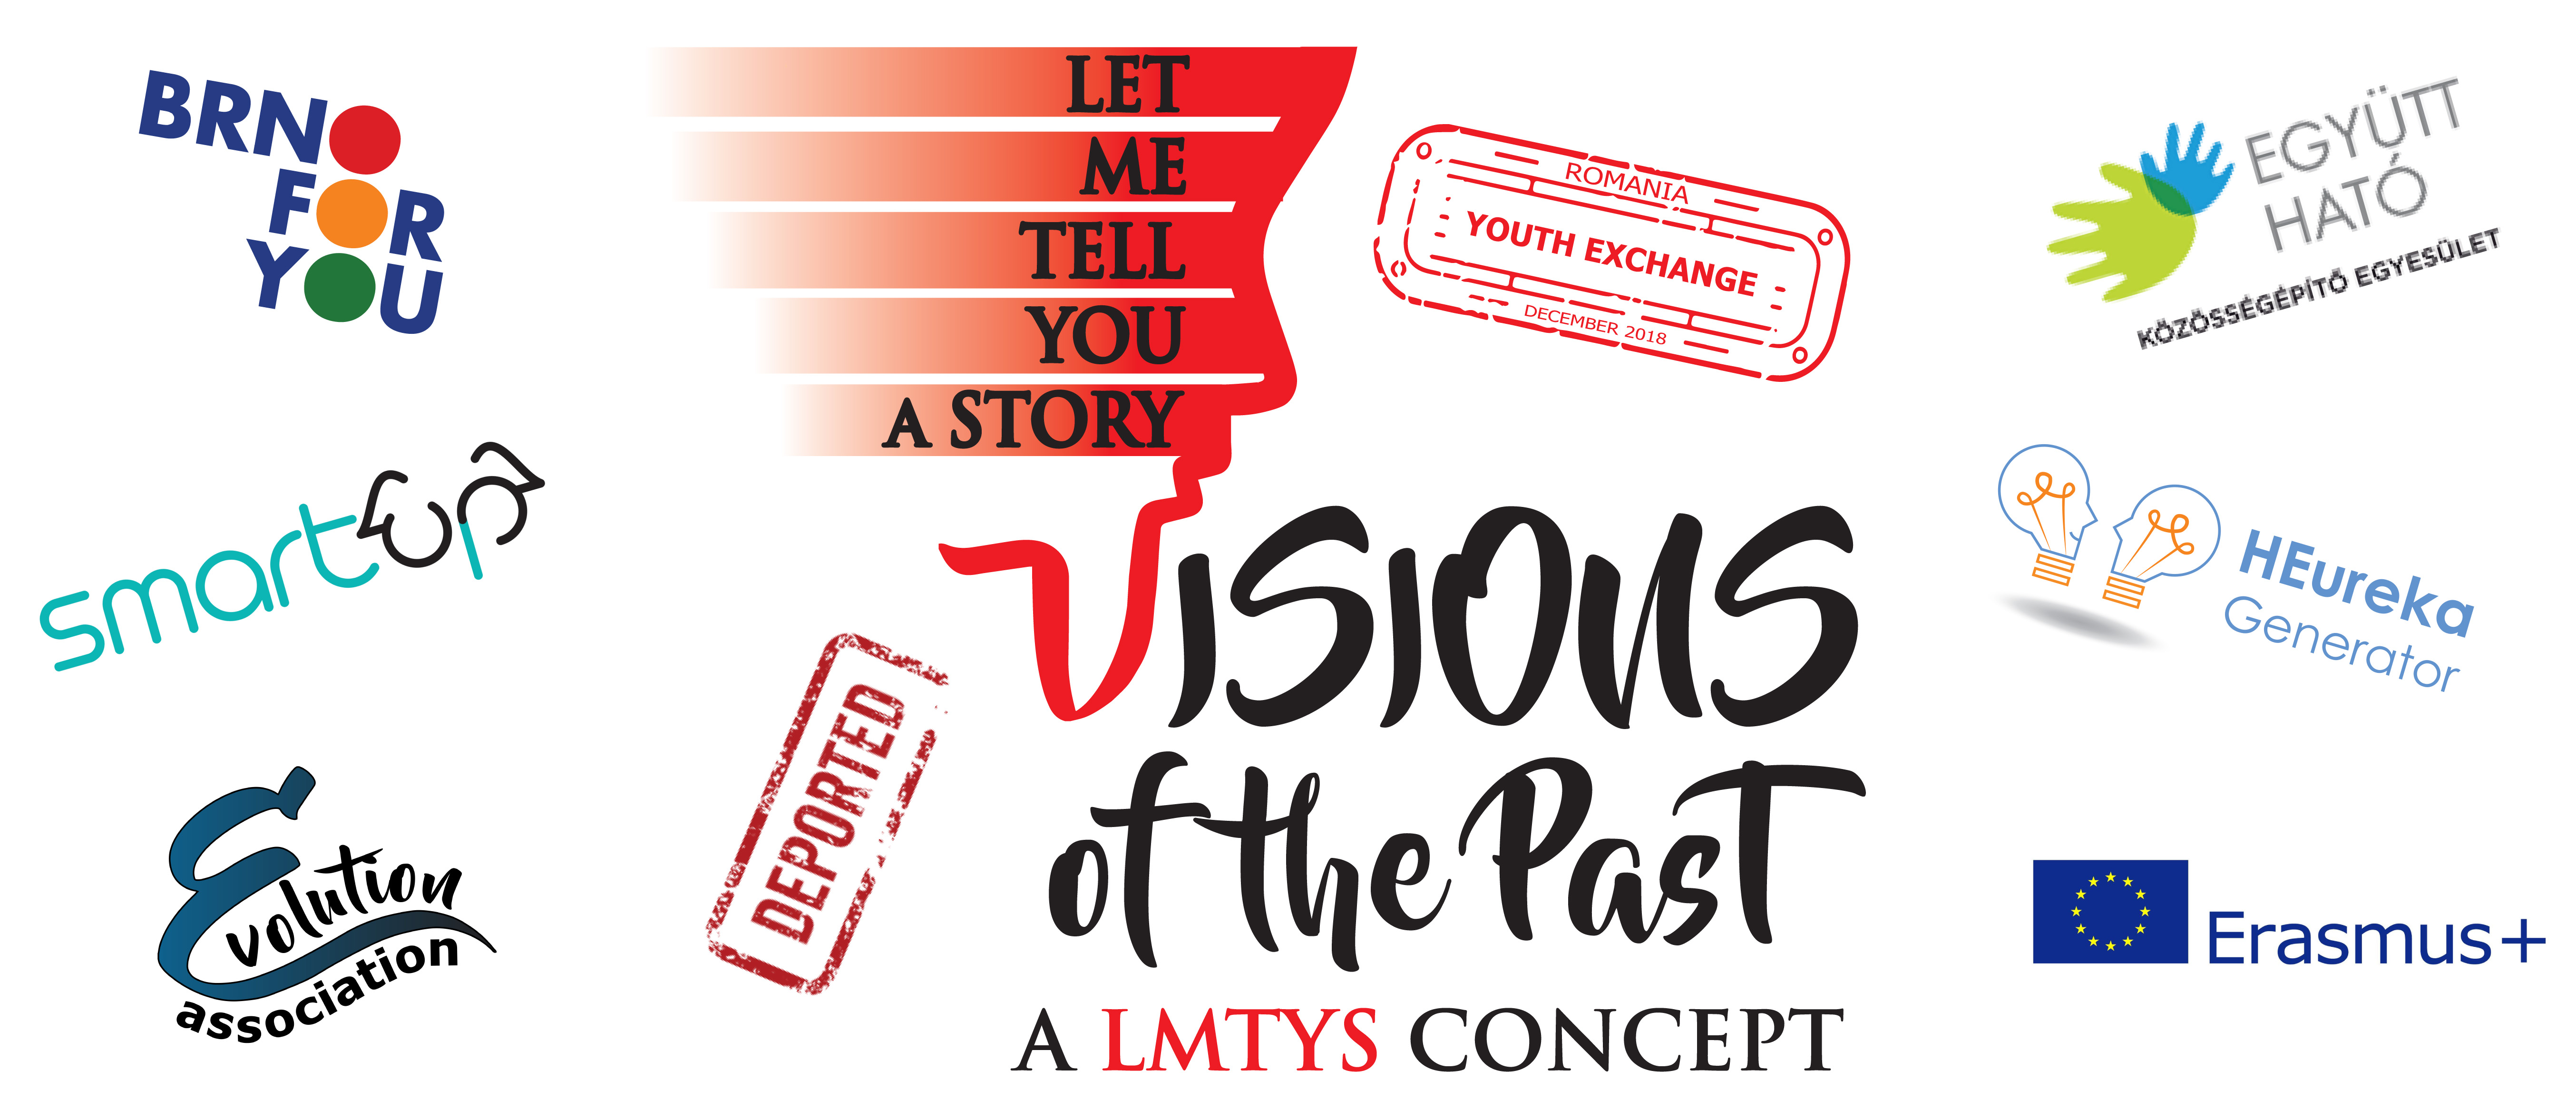 Jsme partnery projektu Let me tell you a story – Vision of the Past (text in English)